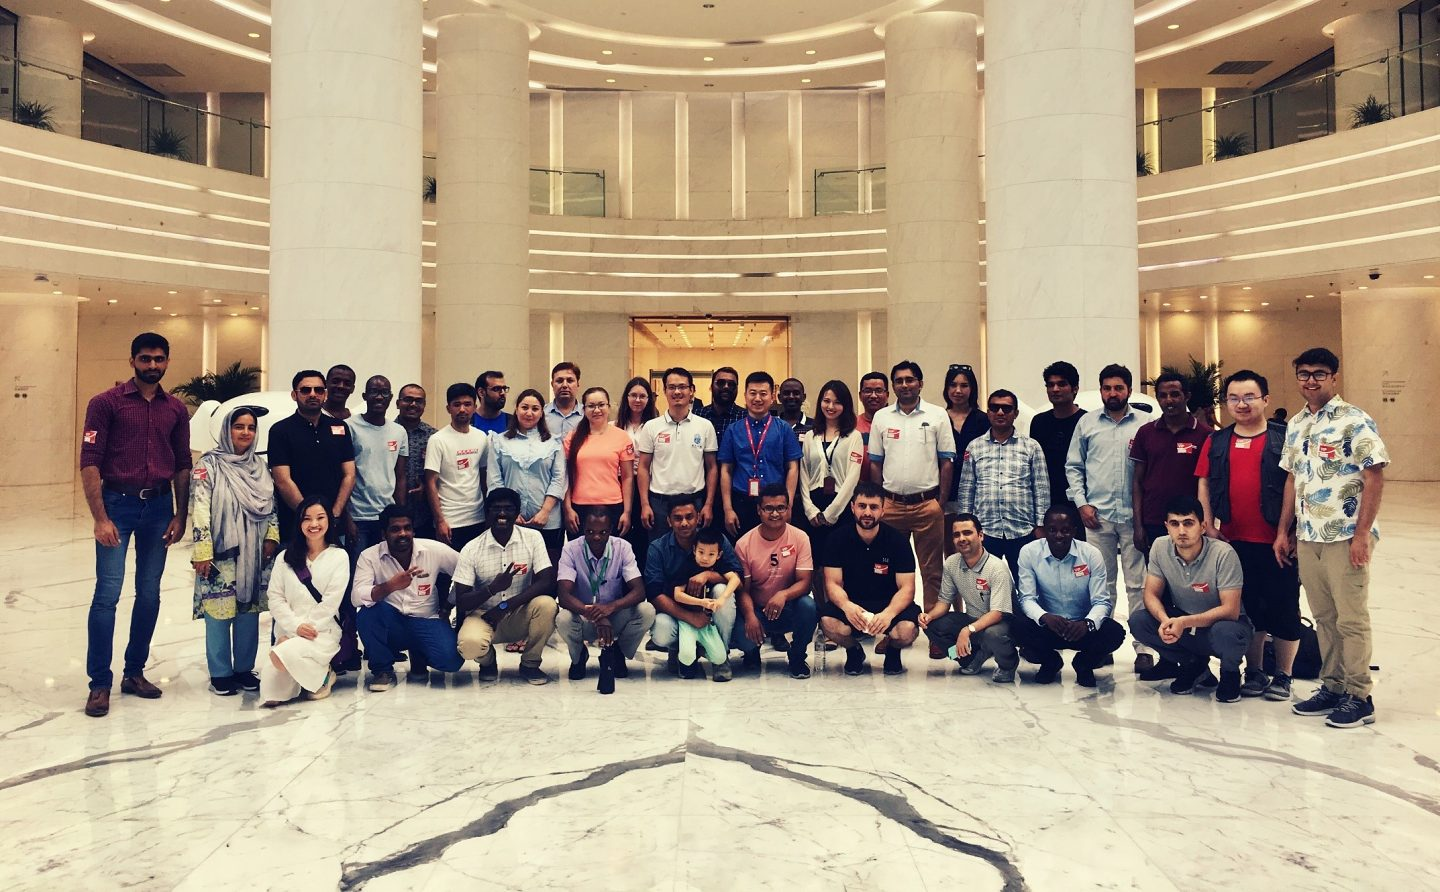 2019 Summer School on Frontier and Inter-Disciplinary Sciences for the Overseas Students held successfully in UCAS, Beijing